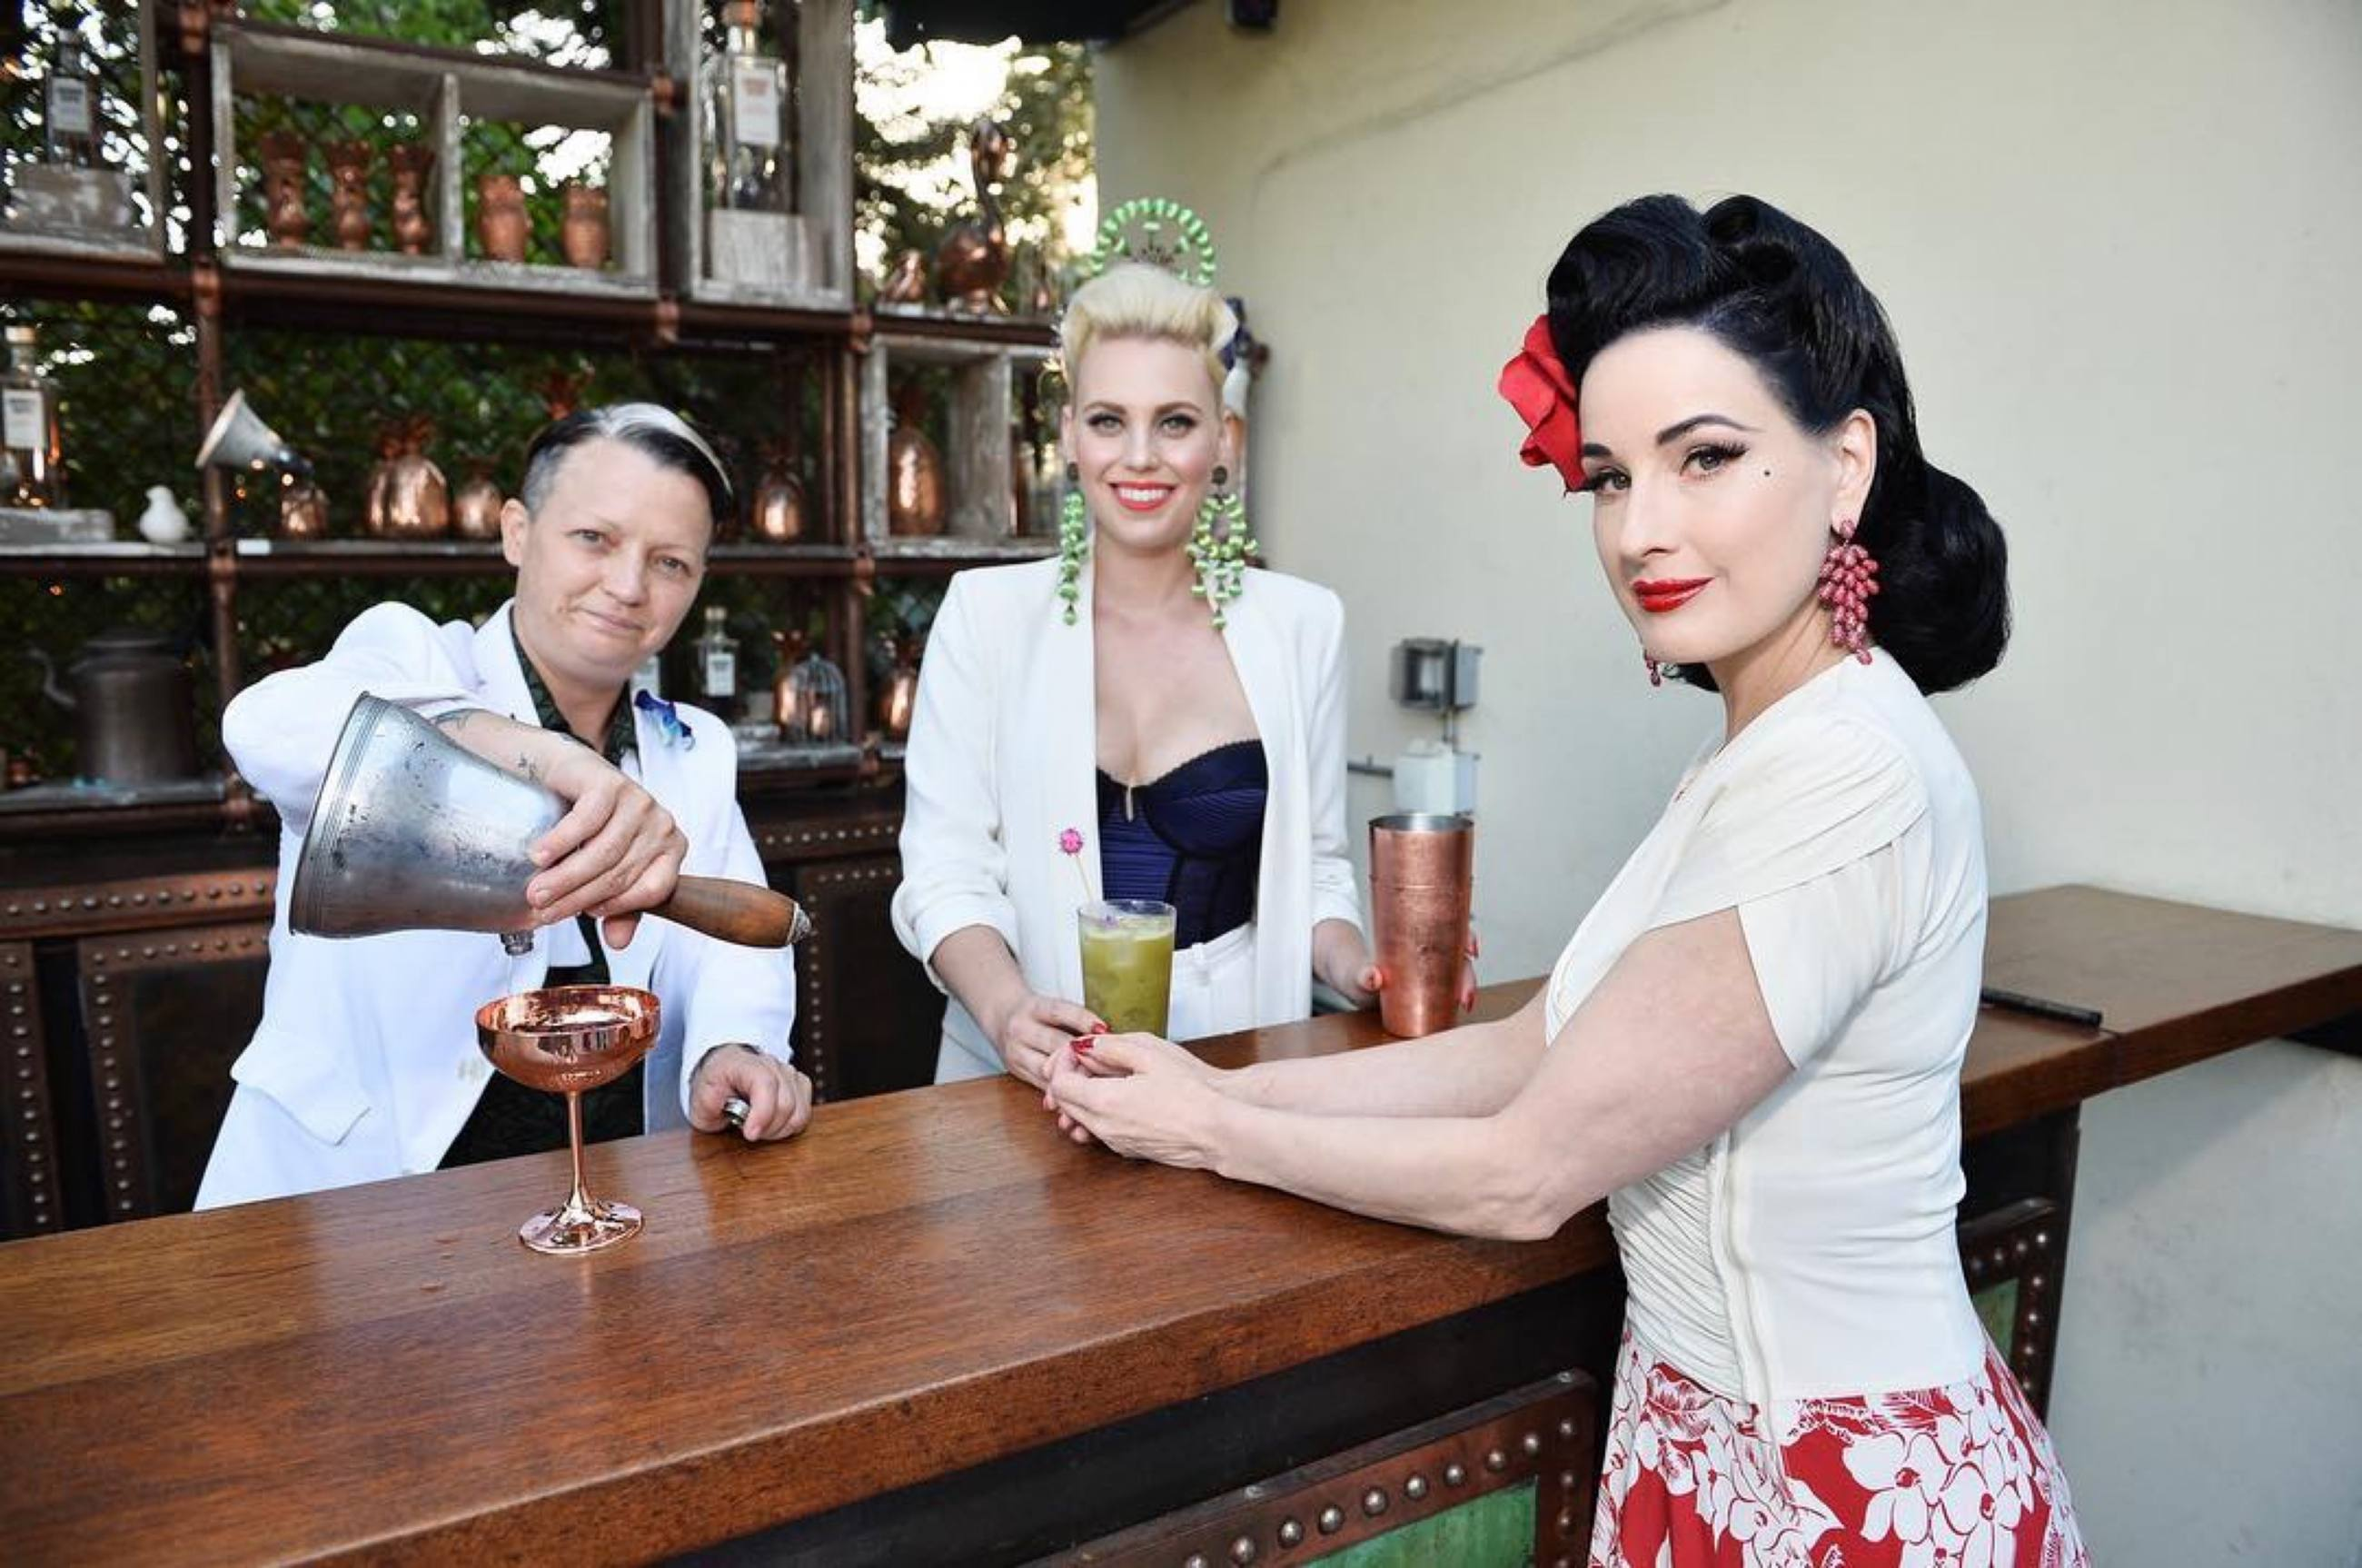 Dita Von Teese with Danielle Motor and Sabrina Minks of Sunset Boulevardier